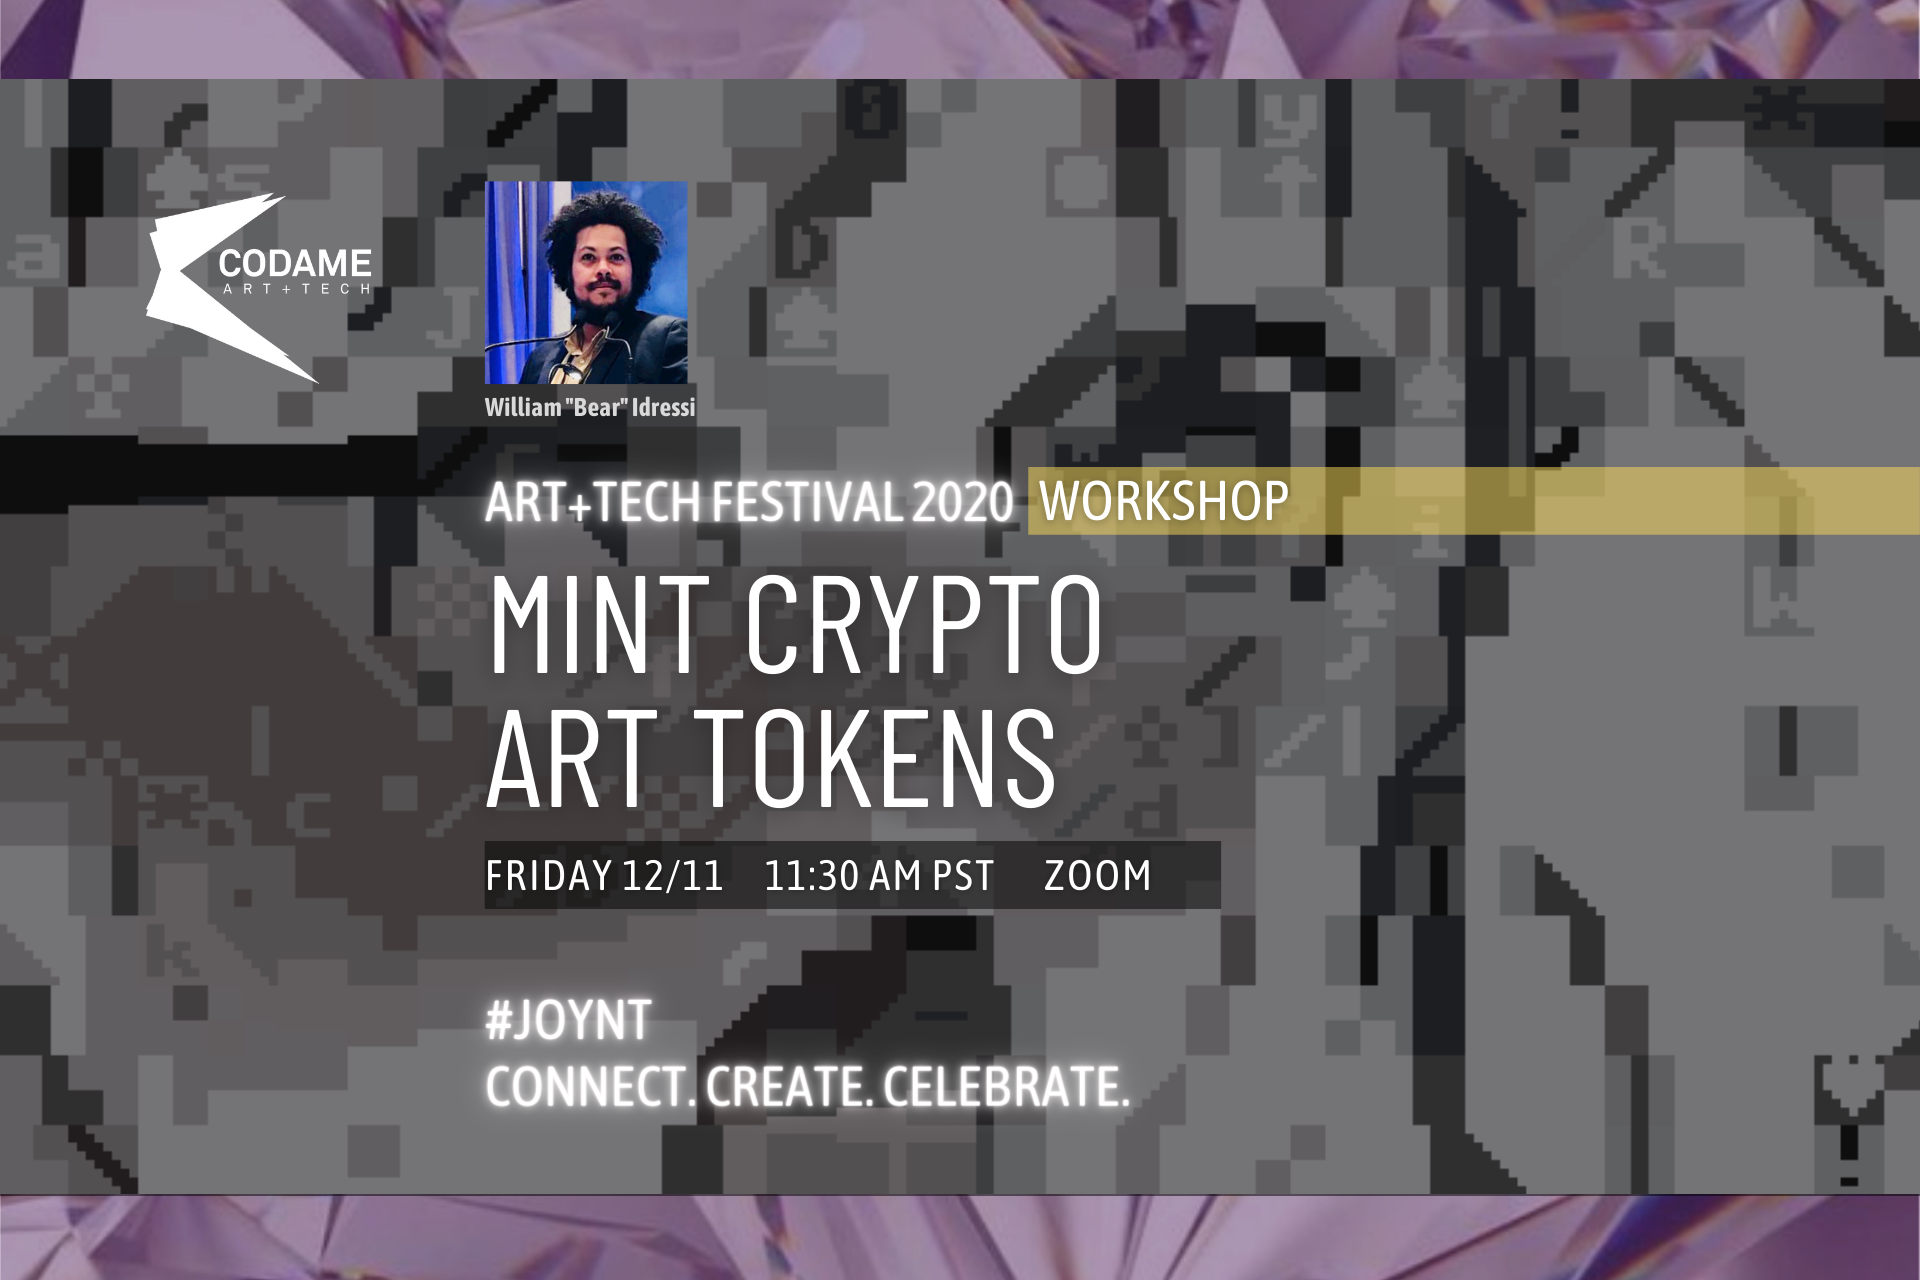 Mint Crypto Art Tokens